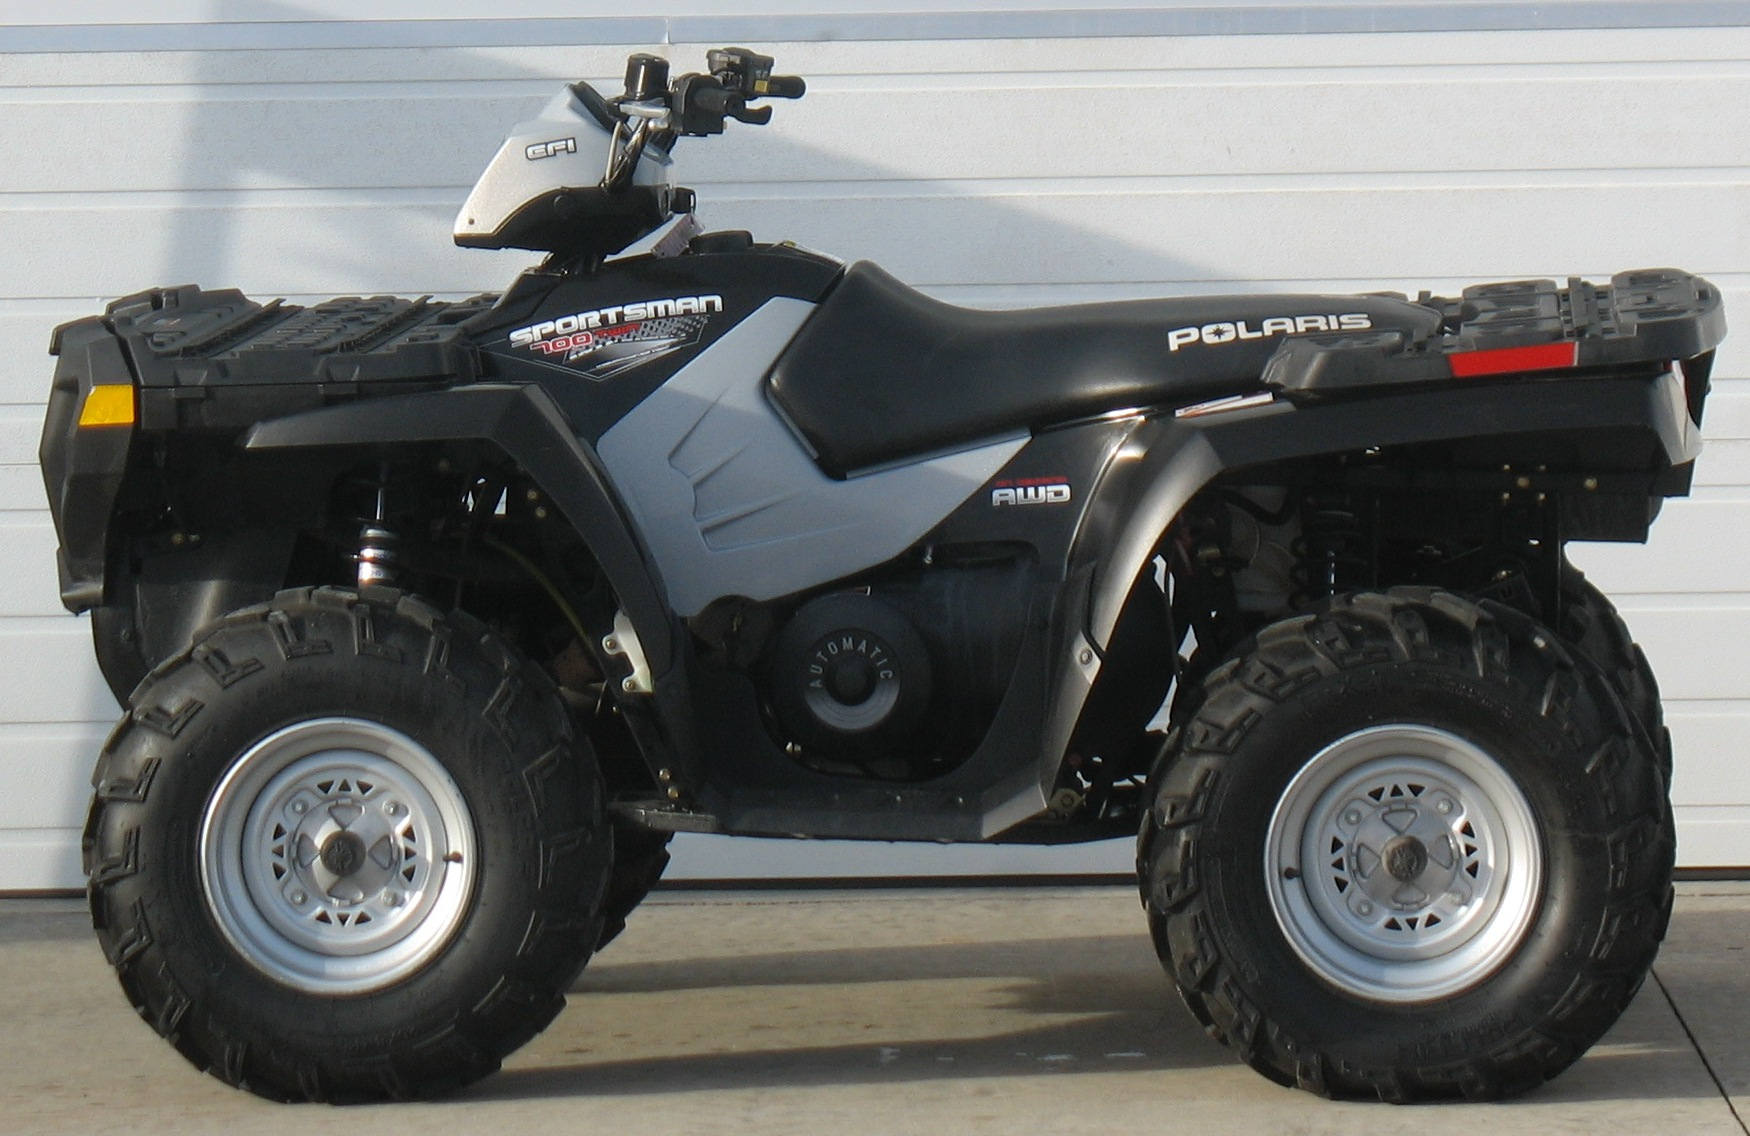 Polaris Sportsman 700 images #121210